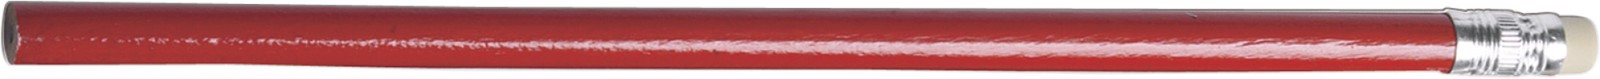 Wooden pencil - Red